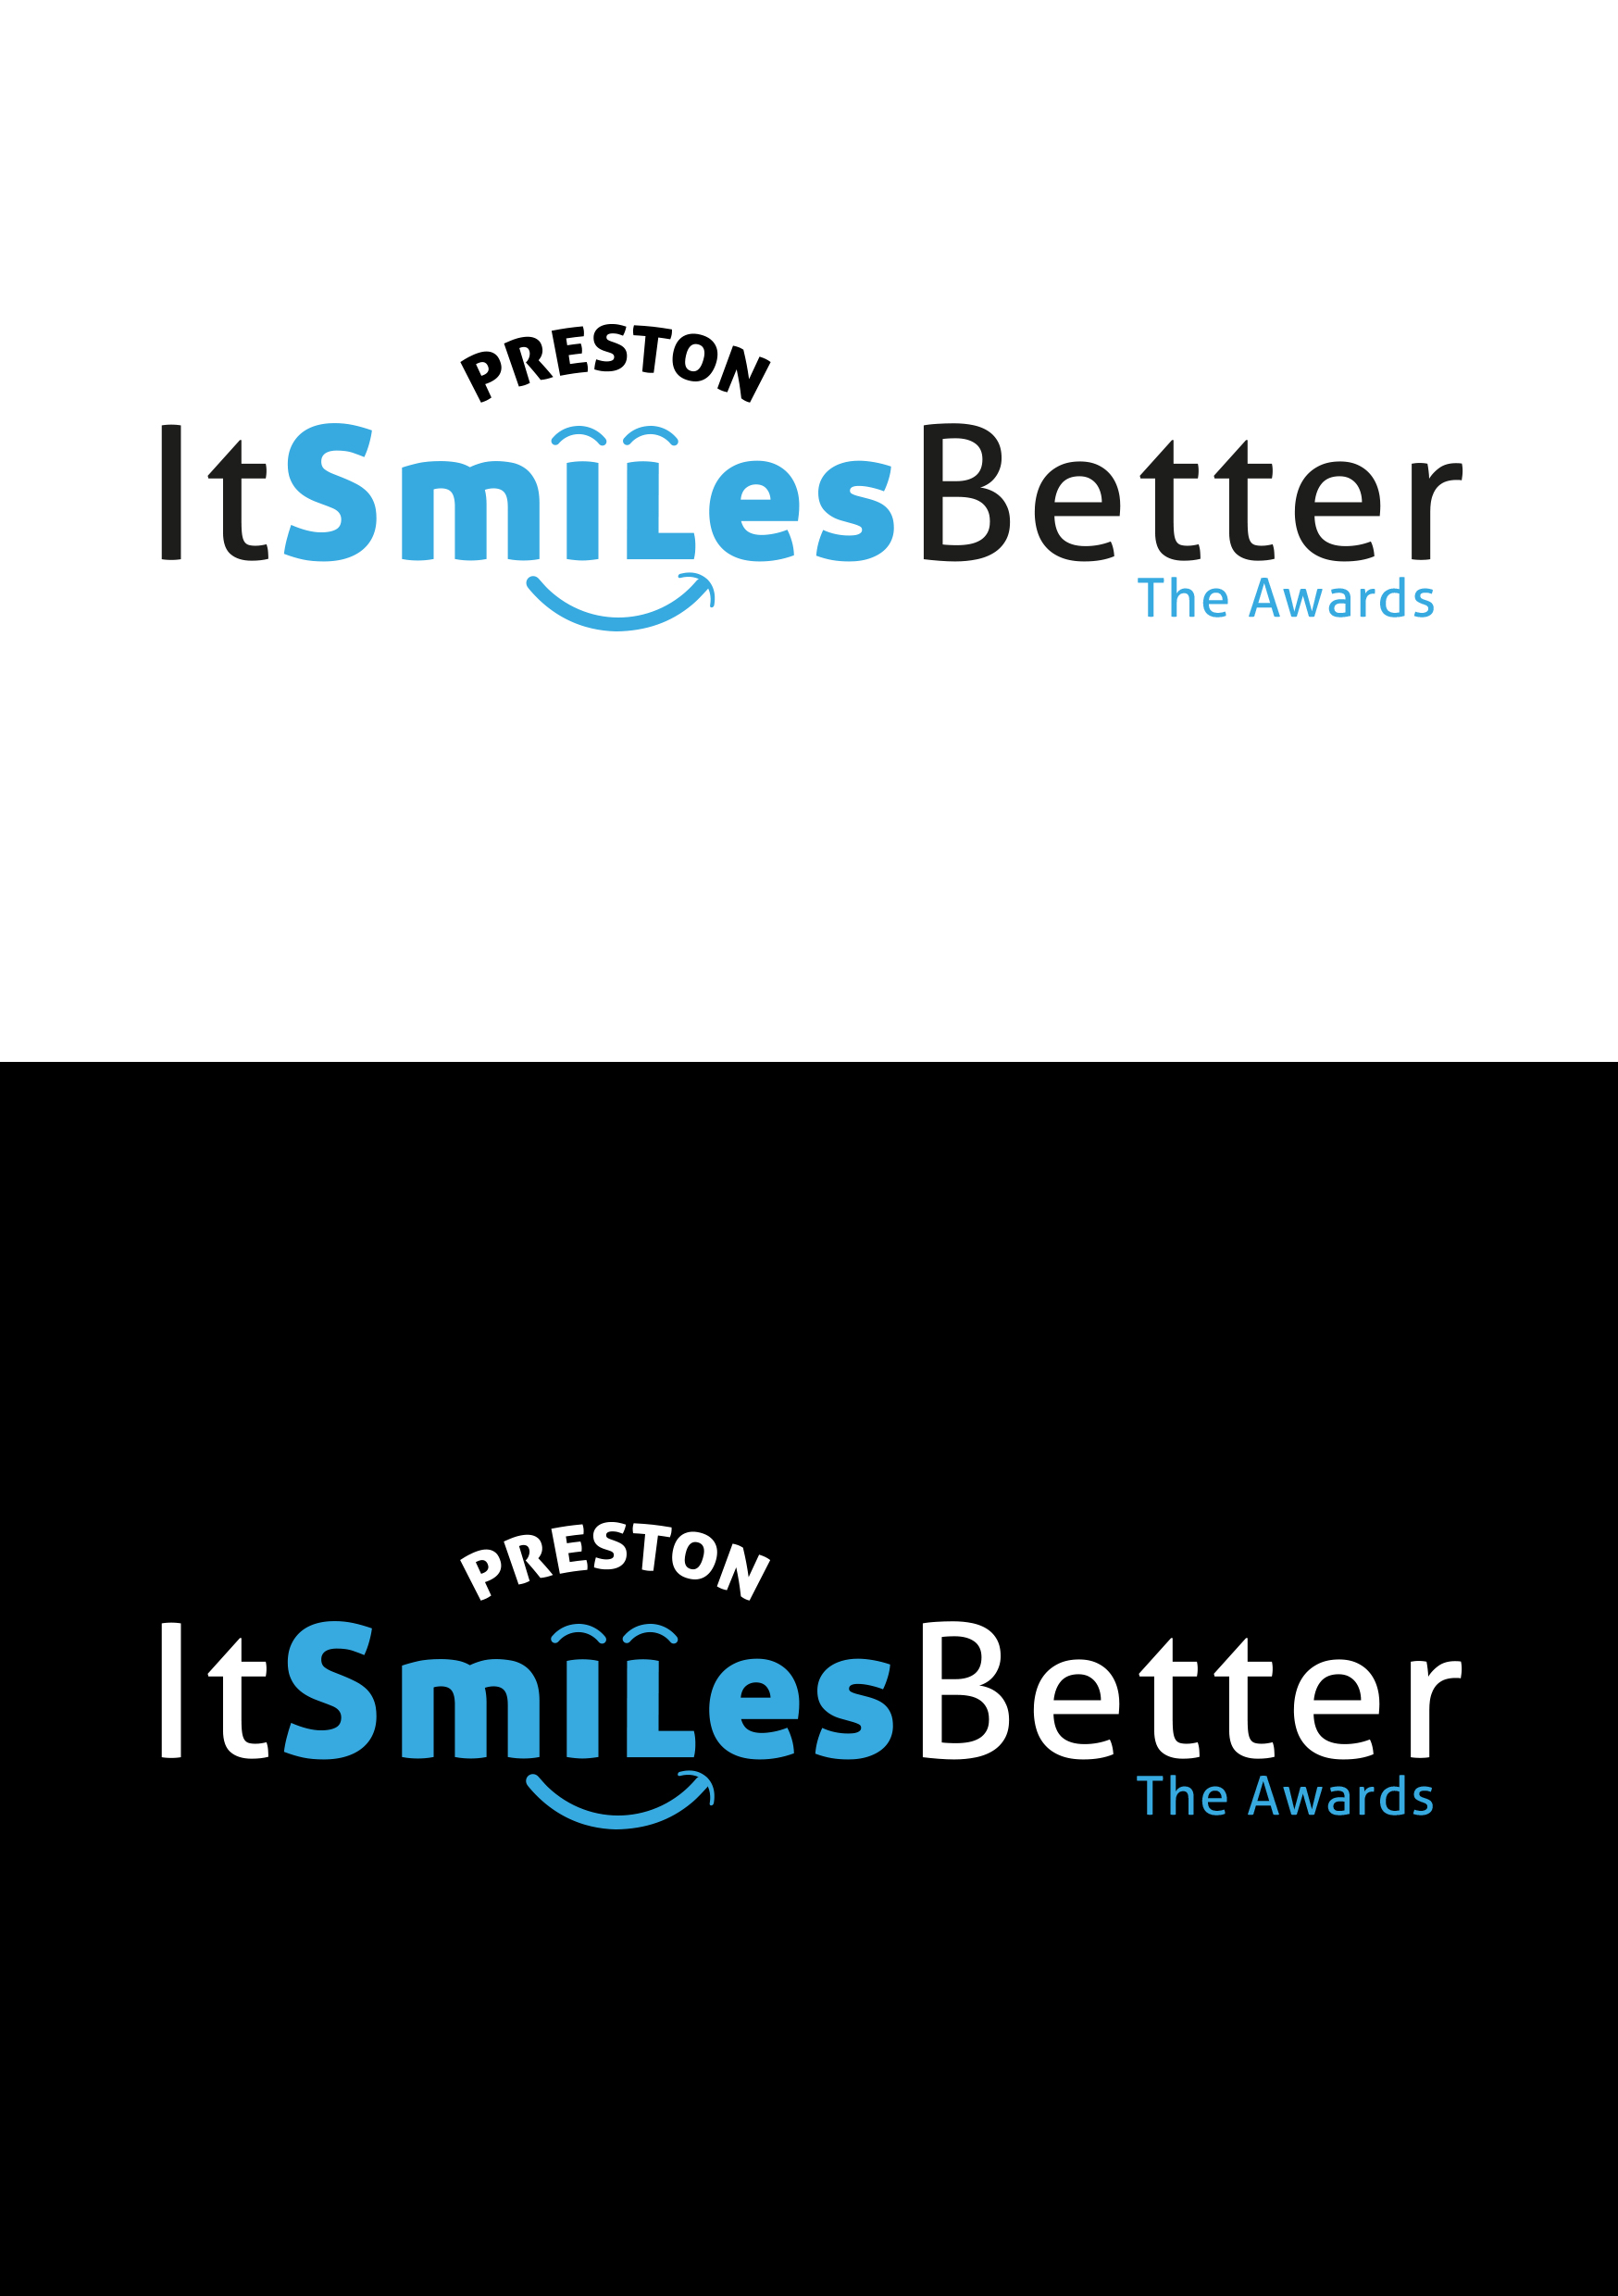 Preston - It Smiles Better Branding Designed by Expressive Media